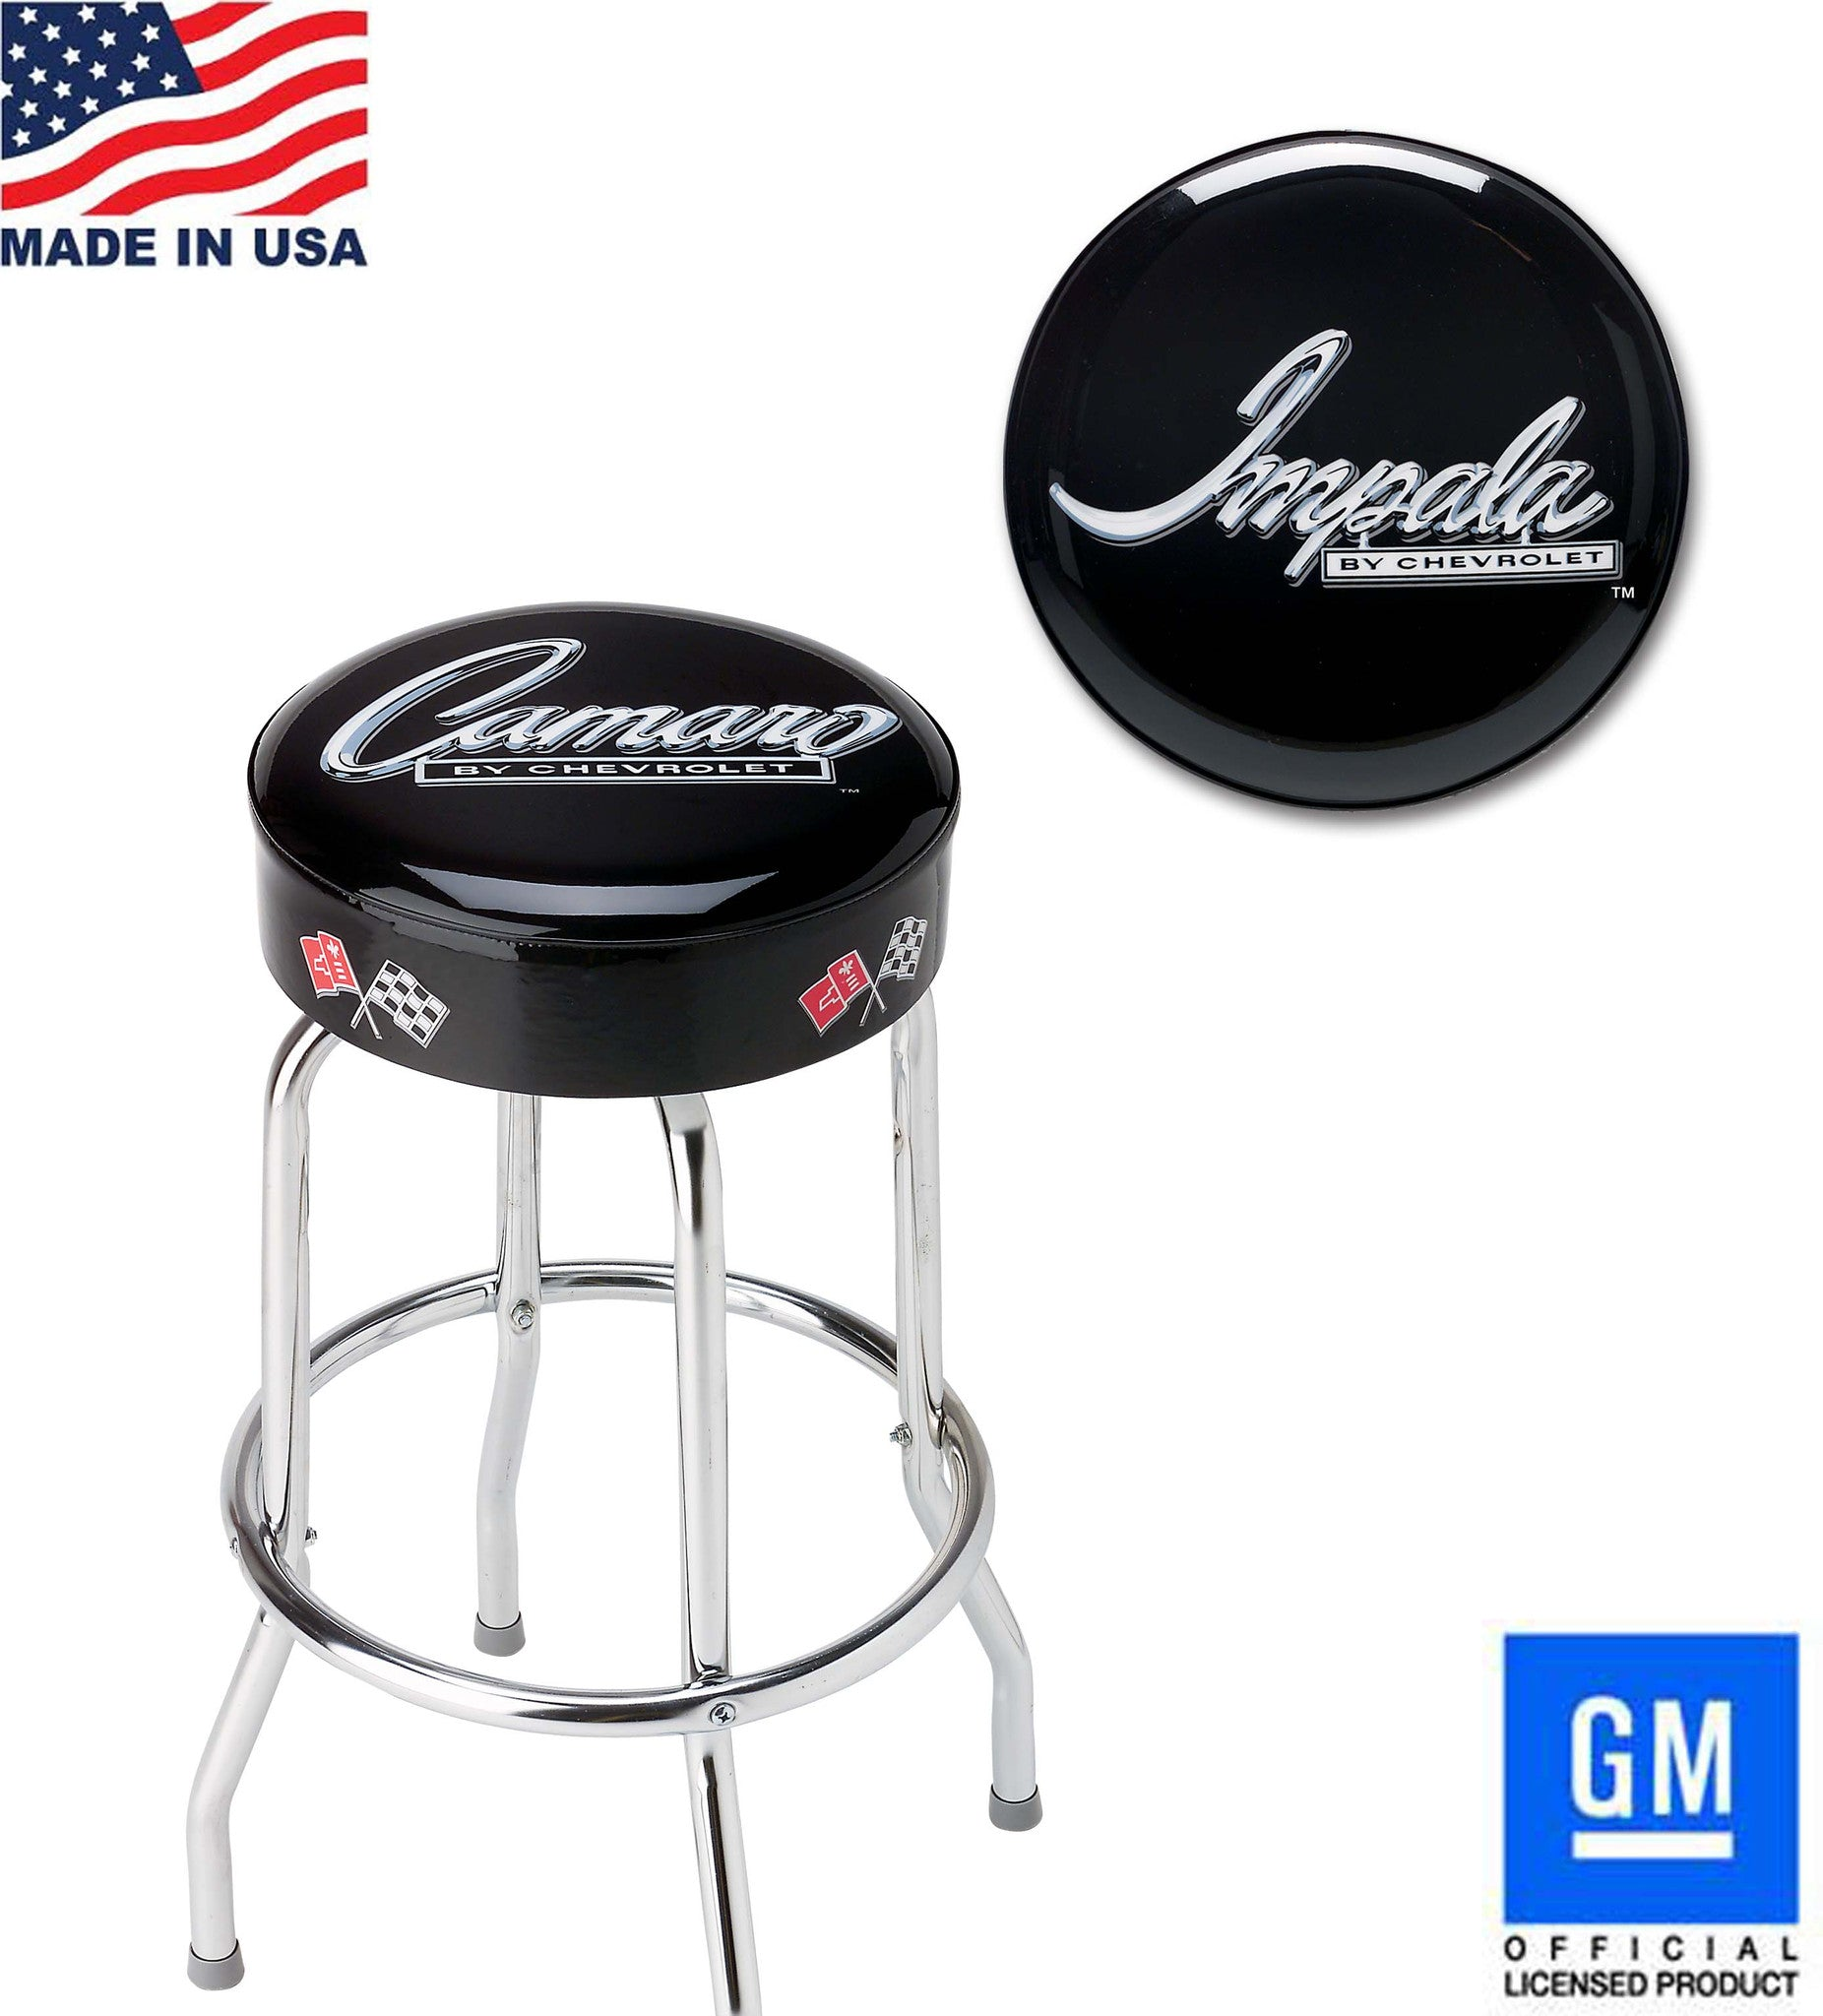 Chevrolet Impala Bar Stool